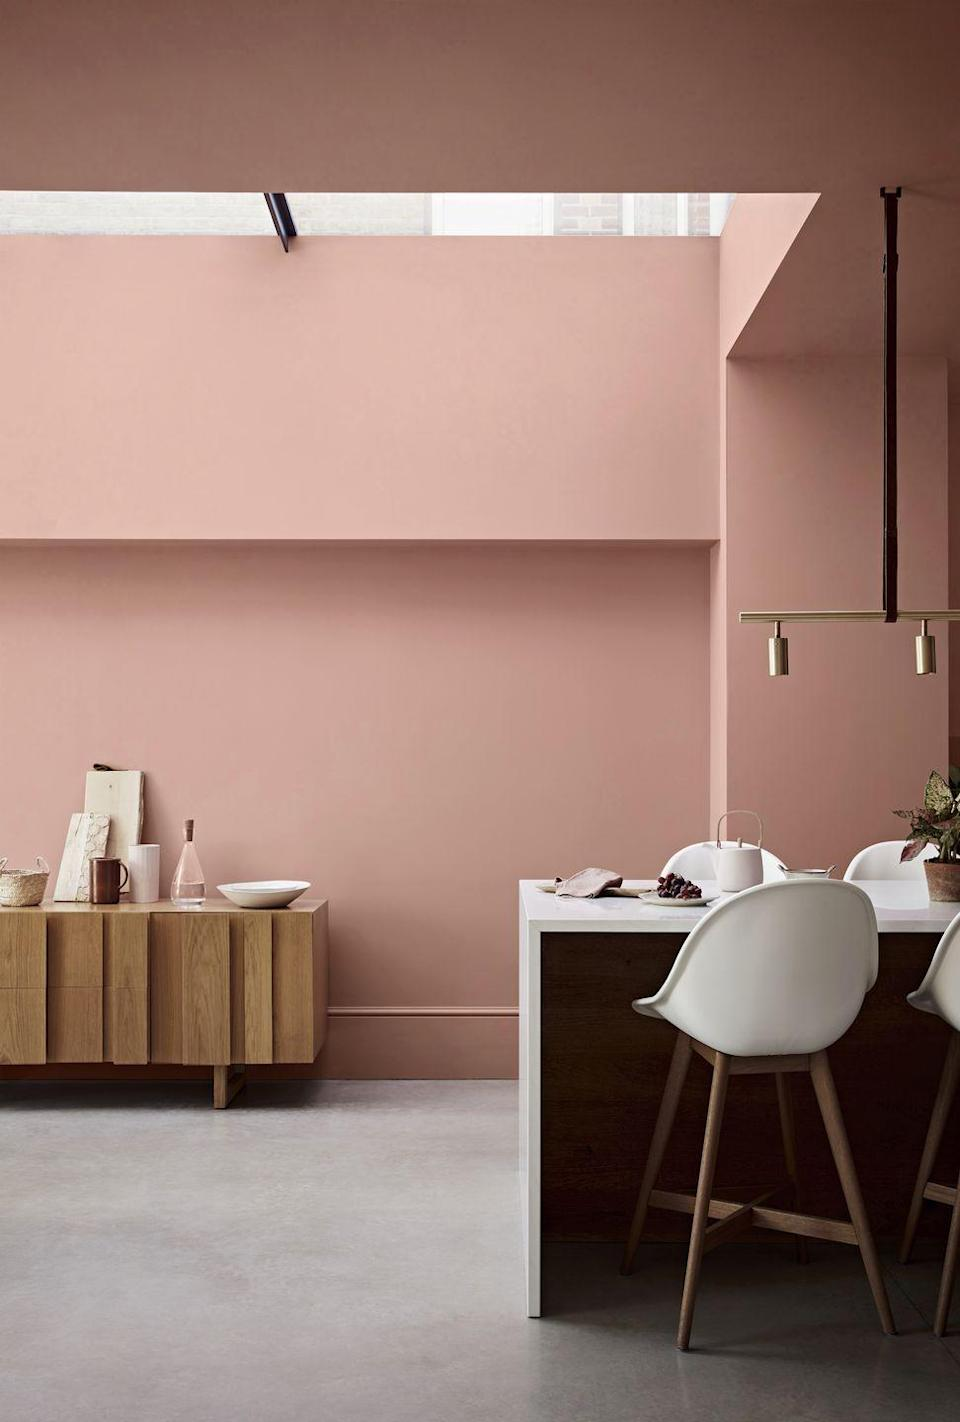 """<p>Ring the changes with a new wall colour. If your kitchen is relatively neutral with monochrome units, the world is your oyster in terms of choosing a new hue. Otherwise, you'll need to opt for a shade to complement your existing cabinets. You could even go one step further by painting the ceiling for an added wow-factor!<br></p><p>Pictured: Powdered Clay matt emulsion, <a href=""""https://www.crownpaints.co.uk/"""" rel=""""nofollow noopener"""" target=""""_blank"""" data-ylk=""""slk:Crown"""" class=""""link rapid-noclick-resp"""">Crown</a></p><p><strong>Like this article? <a href=""""https://hearst.emsecure.net/optiext/cr.aspx?ID=DR9UY9ko5HvLAHeexA2ngSL3t49WvQXSjQZAAXe9gg0Rhtz8pxOWix3TXd_WRbE3fnbQEBkC%2BEWZDx"""" rel=""""nofollow noopener"""" target=""""_blank"""" data-ylk=""""slk:Sign up to our newsletter"""" class=""""link rapid-noclick-resp"""">Sign up to our newsletter</a> to get more articles like this delivered straight to your inbox.</strong></p><p><a class=""""link rapid-noclick-resp"""" href=""""https://hearst.emsecure.net/optiext/cr.aspx?ID=DR9UY9ko5HvLAHeexA2ngSL3t49WvQXSjQZAAXe9gg0Rhtz8pxOWix3TXd_WRbE3fnbQEBkC%2BEWZDx"""" rel=""""nofollow noopener"""" target=""""_blank"""" data-ylk=""""slk:SIGN UP"""">SIGN UP</a><br><br>Love what you're reading? Enjoy <a href=""""https://go.redirectingat.com?id=127X1599956&url=https%3A%2F%2Fwww.hearstmagazines.co.uk%2Fhb%2Fhouse-beautiful-magazine-subscription-website&sref=https%3A%2F%2Fwww.housebeautiful.com%2Fuk%2Fdecorate%2Fkitchen%2Fg35968126%2Fkitchen-tweaks%2F"""" rel=""""nofollow noopener"""" target=""""_blank"""" data-ylk=""""slk:House Beautiful magazine"""" class=""""link rapid-noclick-resp"""">House Beautiful magazine</a> delivered straight to your door every month with Free UK delivery. Buy direct from the publisher for the lowest price and never miss an issue!<br><br><a class=""""link rapid-noclick-resp"""" href=""""https://go.redirectingat.com?id=127X1599956&url=https%3A%2F%2Fwww.hearstmagazines.co.uk%2Fhb%2Fhouse-beautiful-magazine-subscription-website&sref=https%3A%2F%2Fwww.housebeautiful.com%2Fuk%2Fdecorate%2Fkitchen%2Fg35968126"""